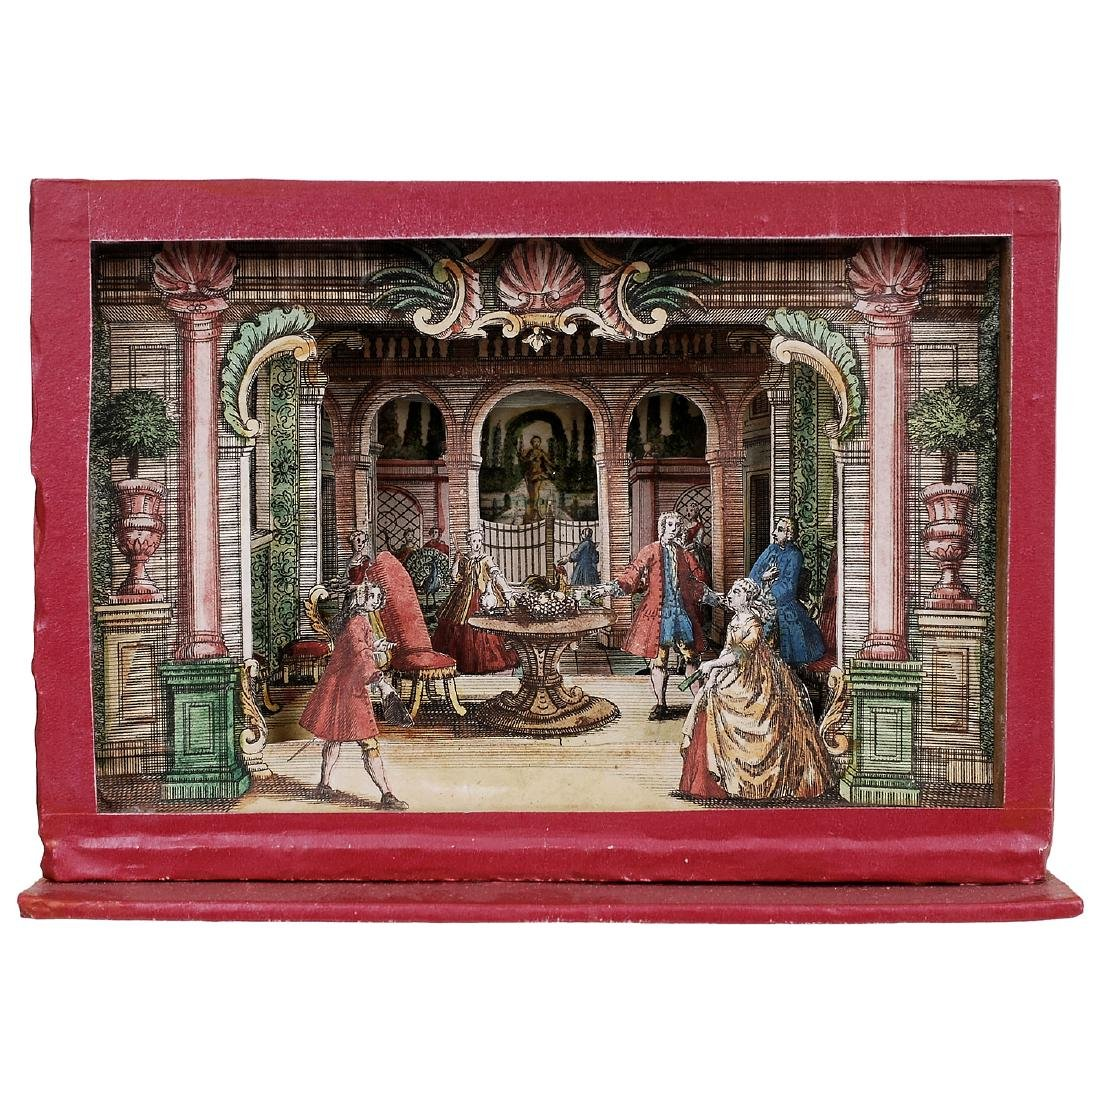 Perspective View Box Diorama, c. 1850-70